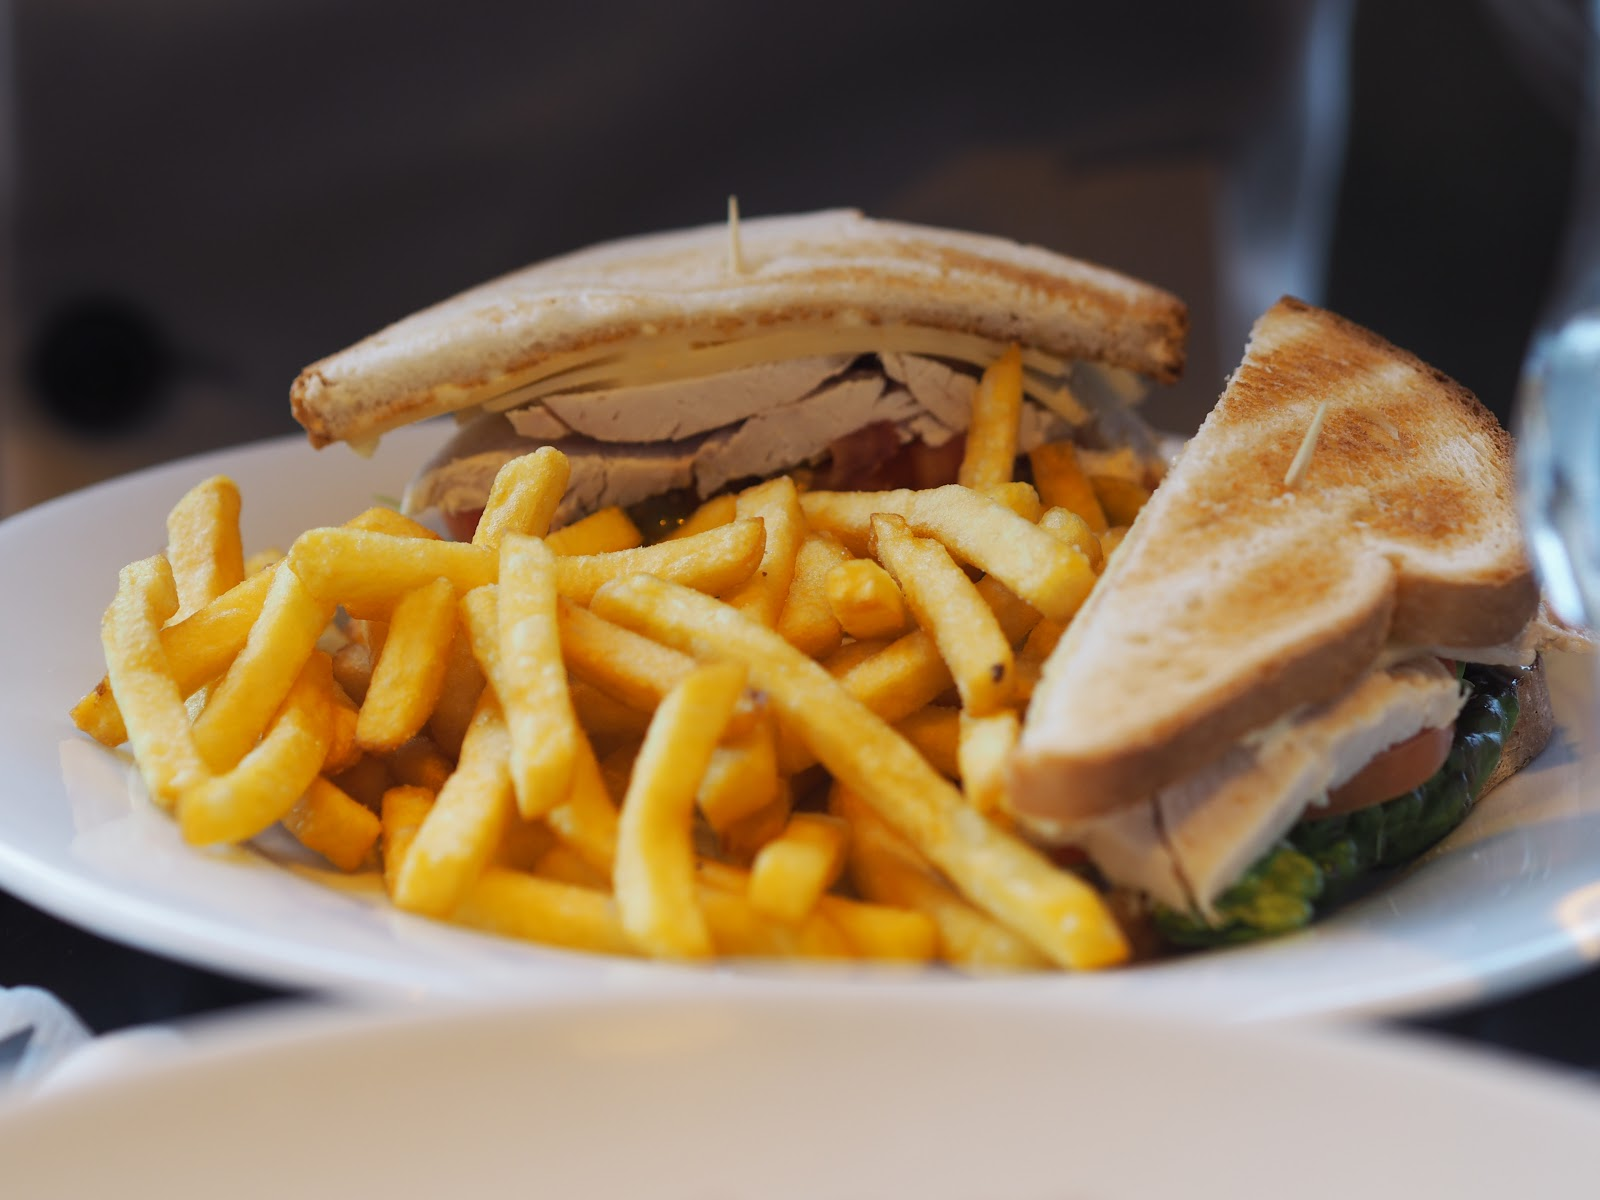 Plate of Club Sandwich and chips